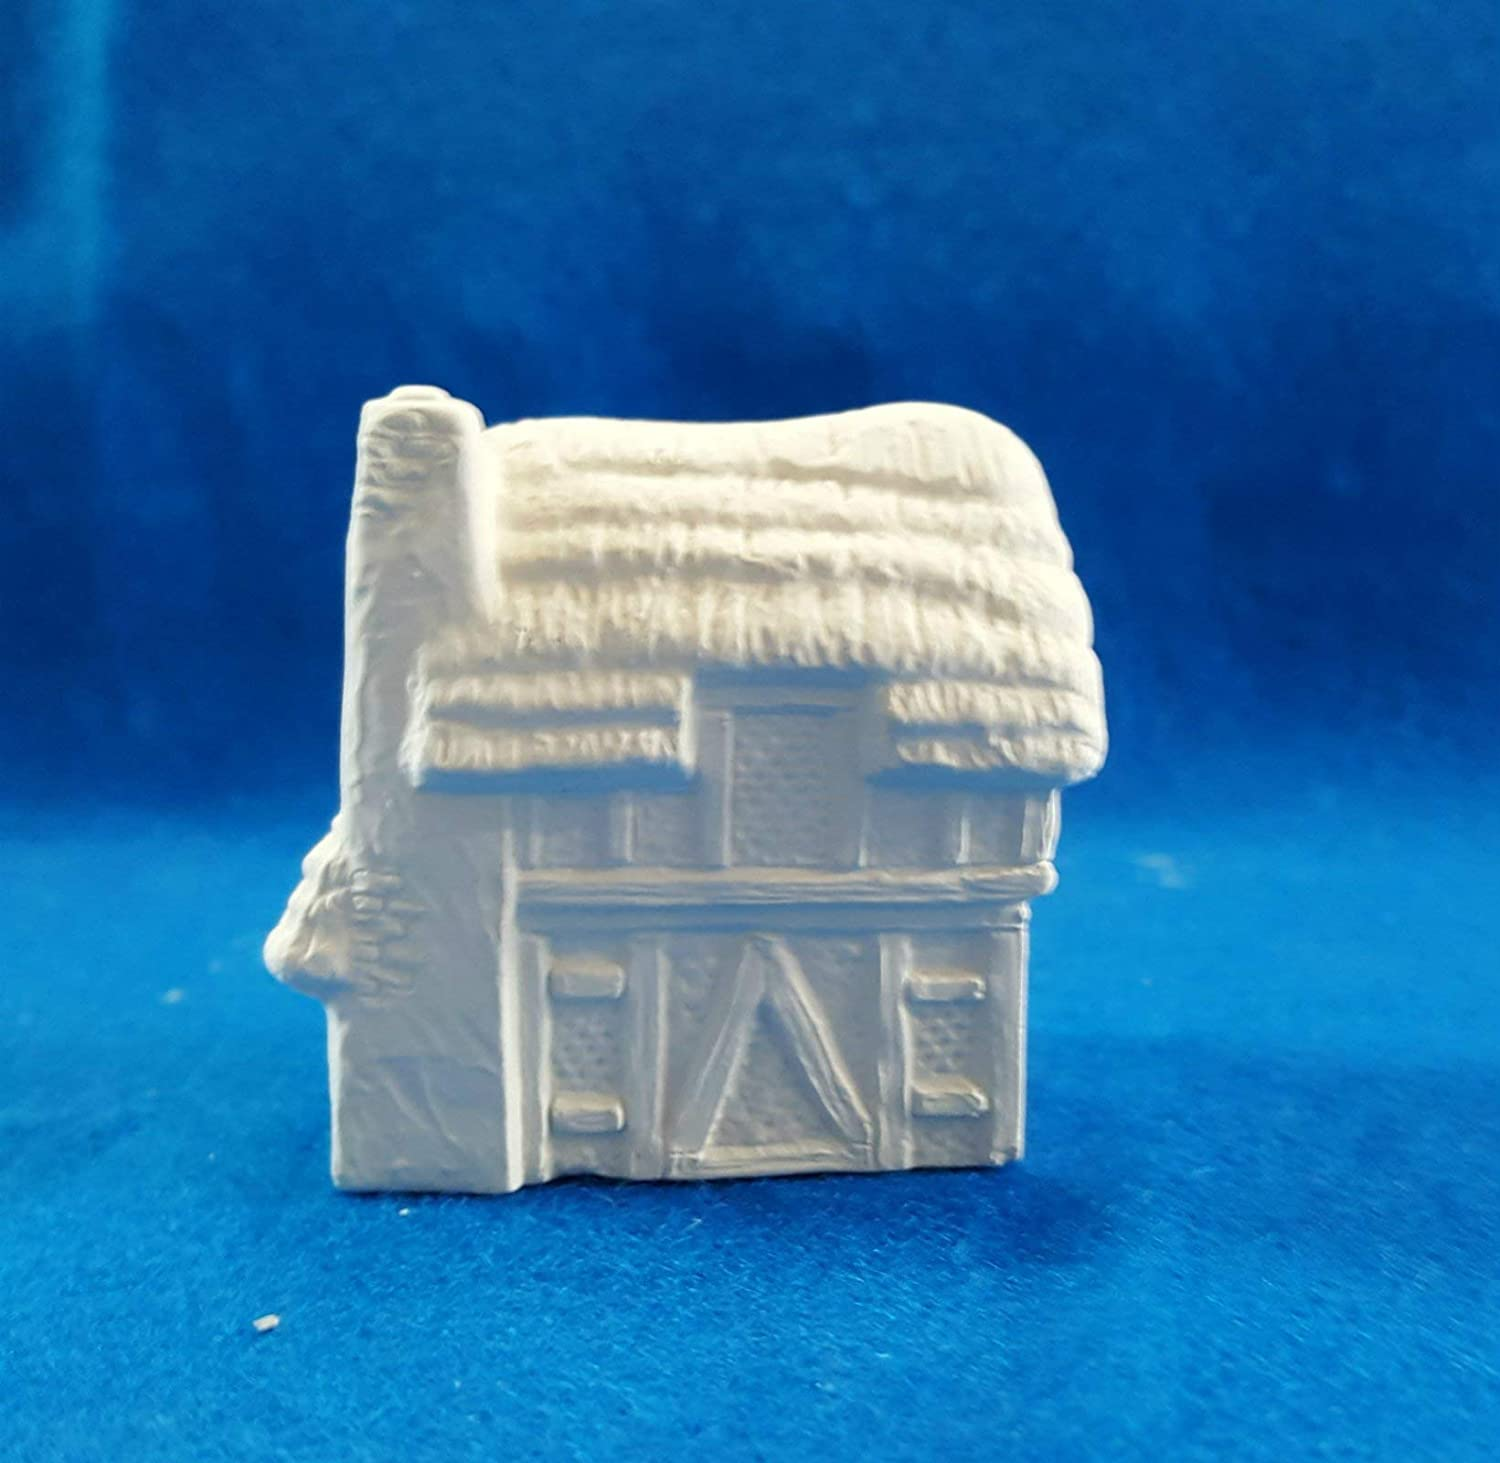 Thatch Roof Tudor with V door Mini House #4 unpainted ceramic bisque ready to be painted